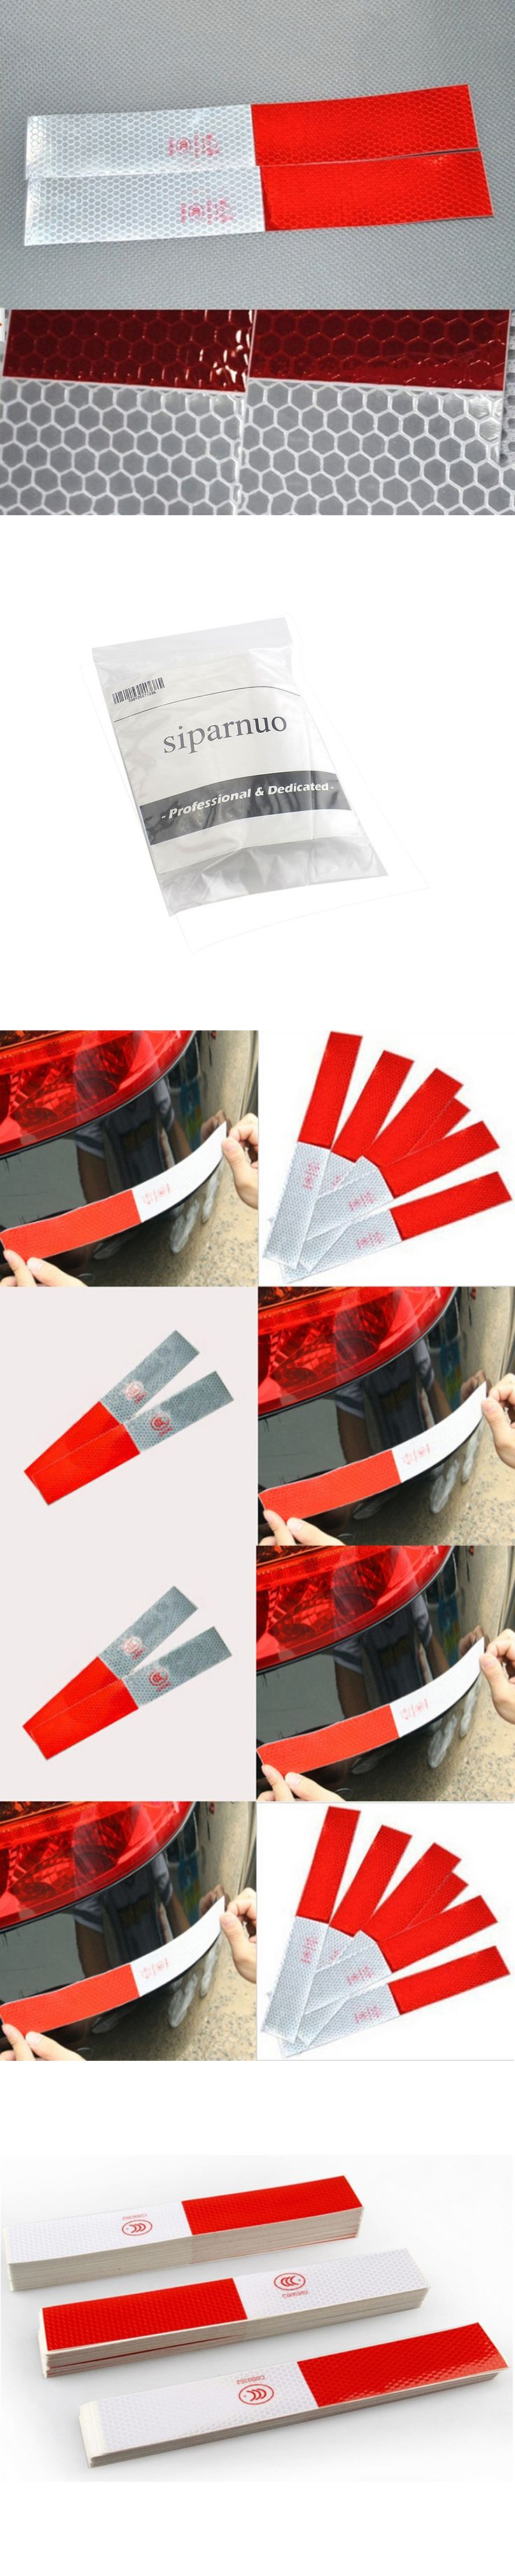 siparnuo 20pcs/lot Car Sticker Car Warning Stickers Reflective Safety Stickers Auto Decals 30x5cm